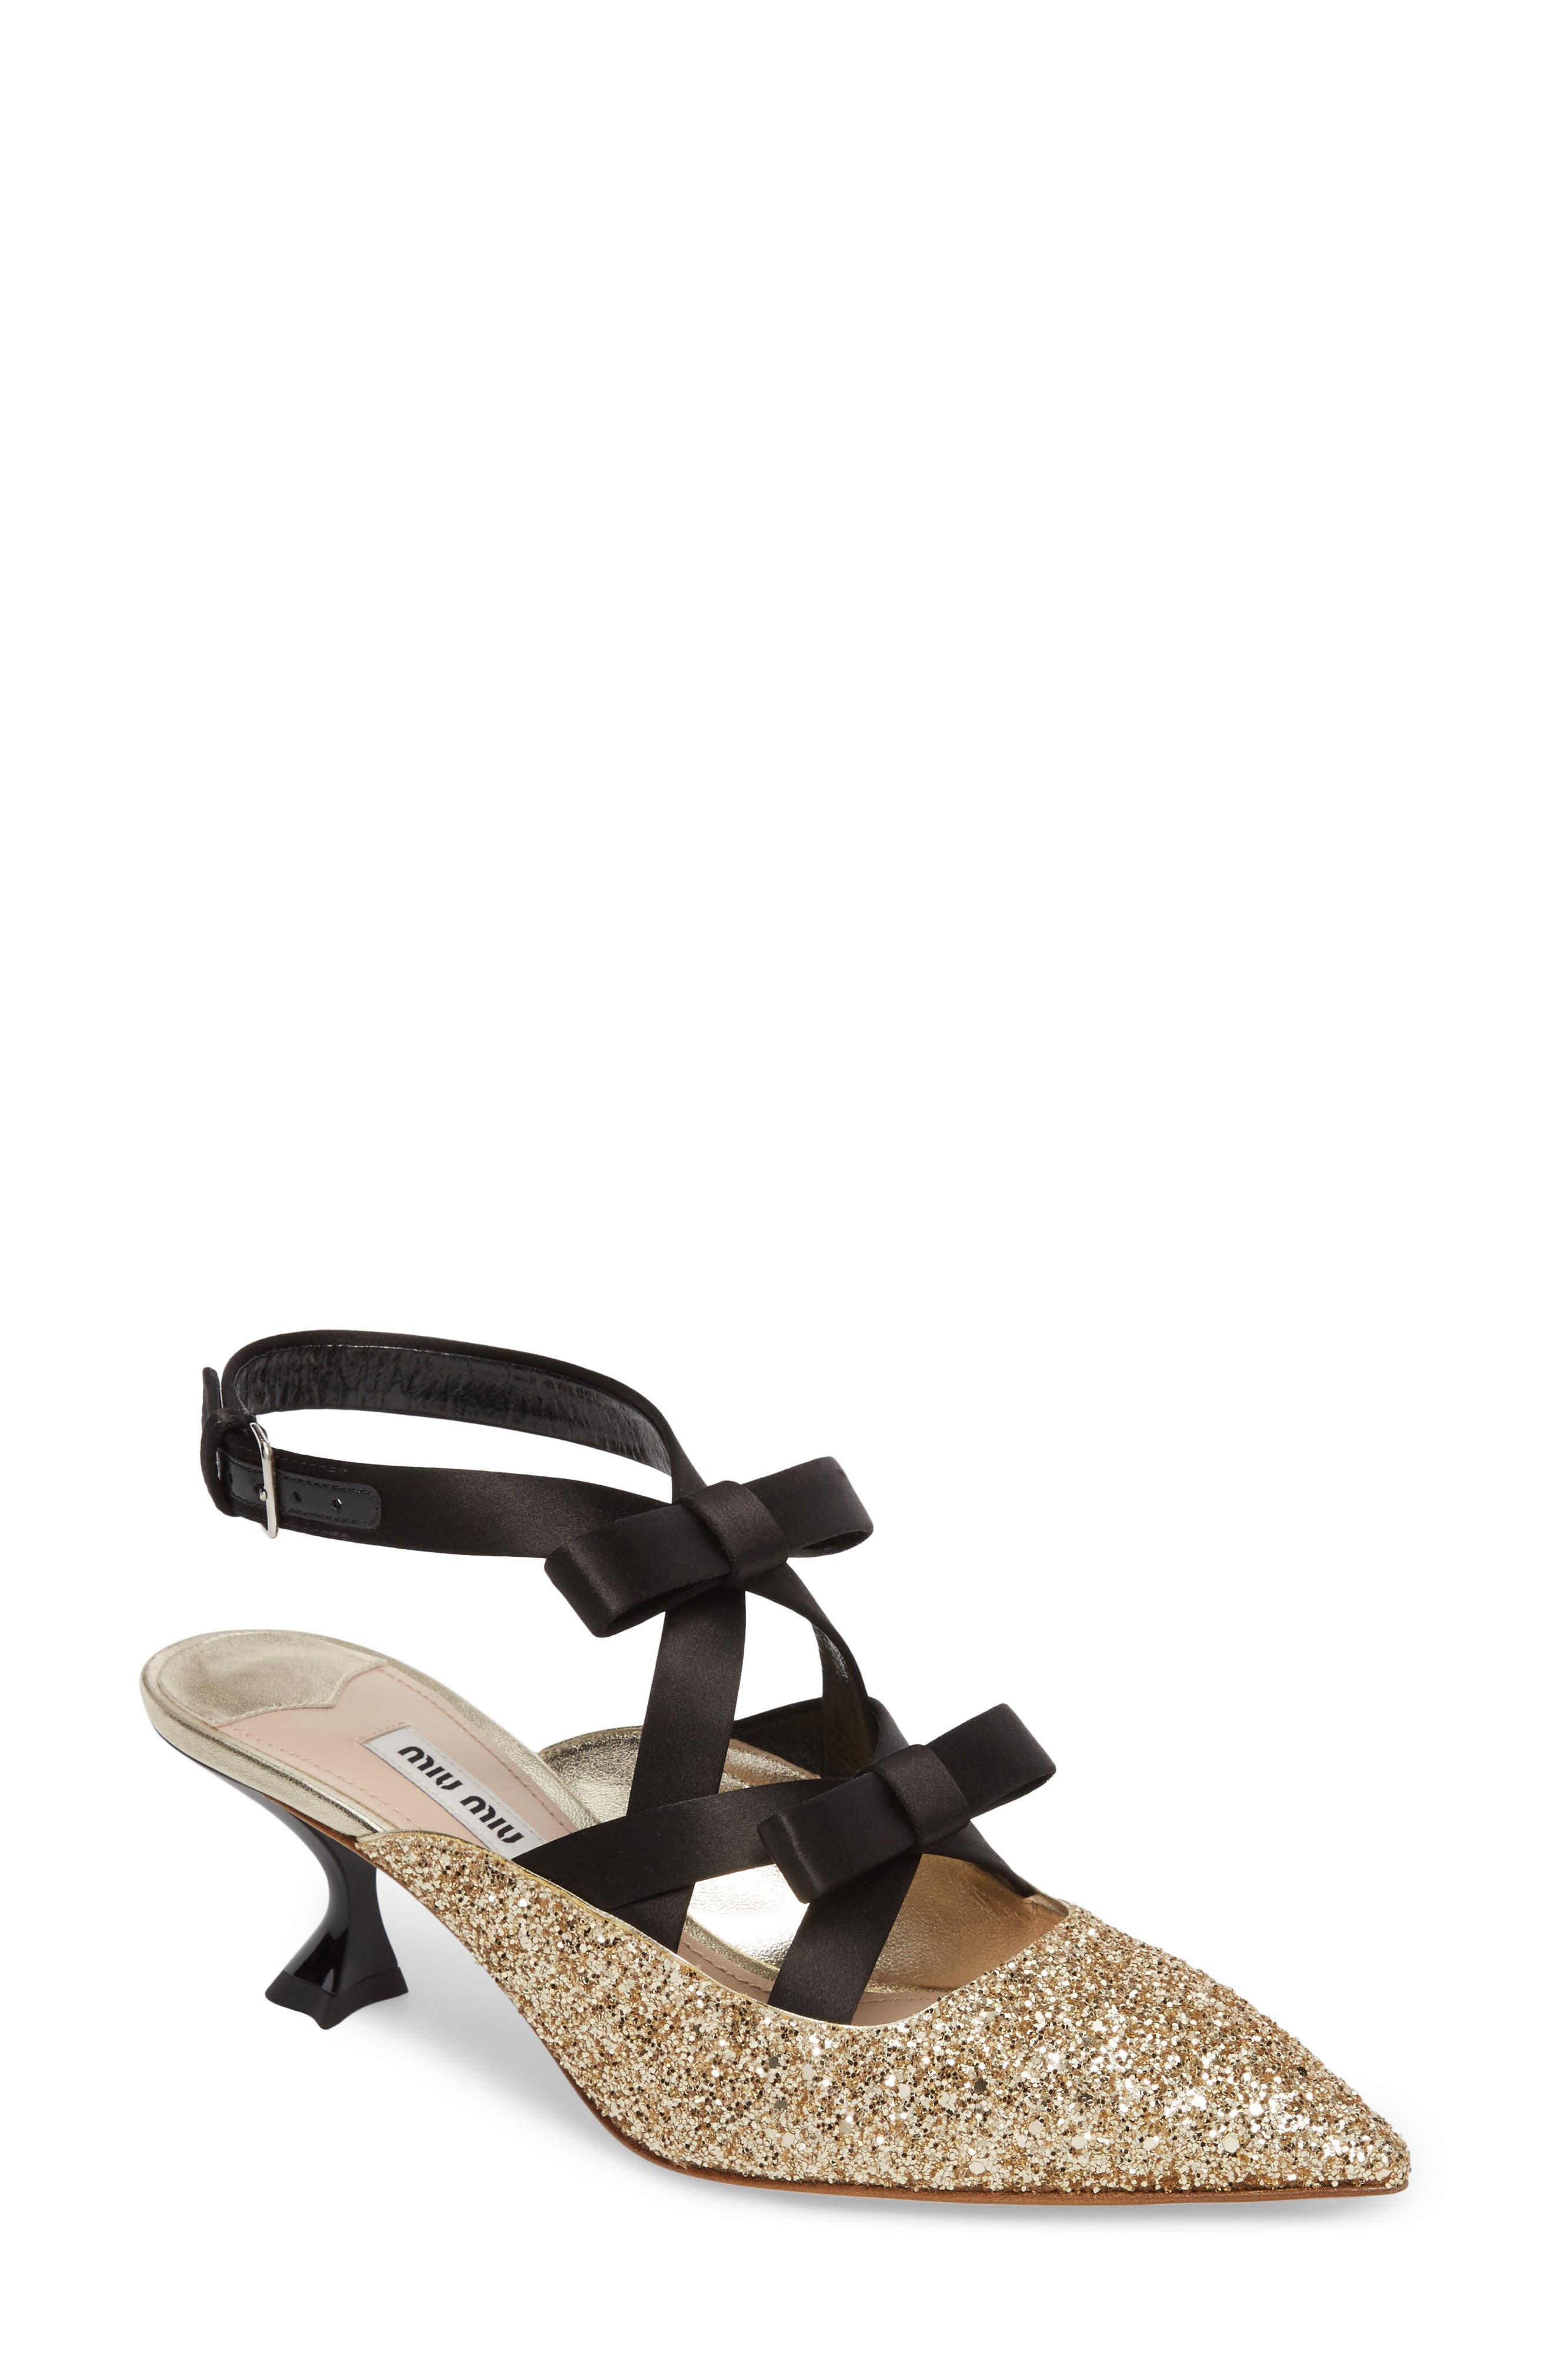 Miu Miu Bow Strap Pump (Women)